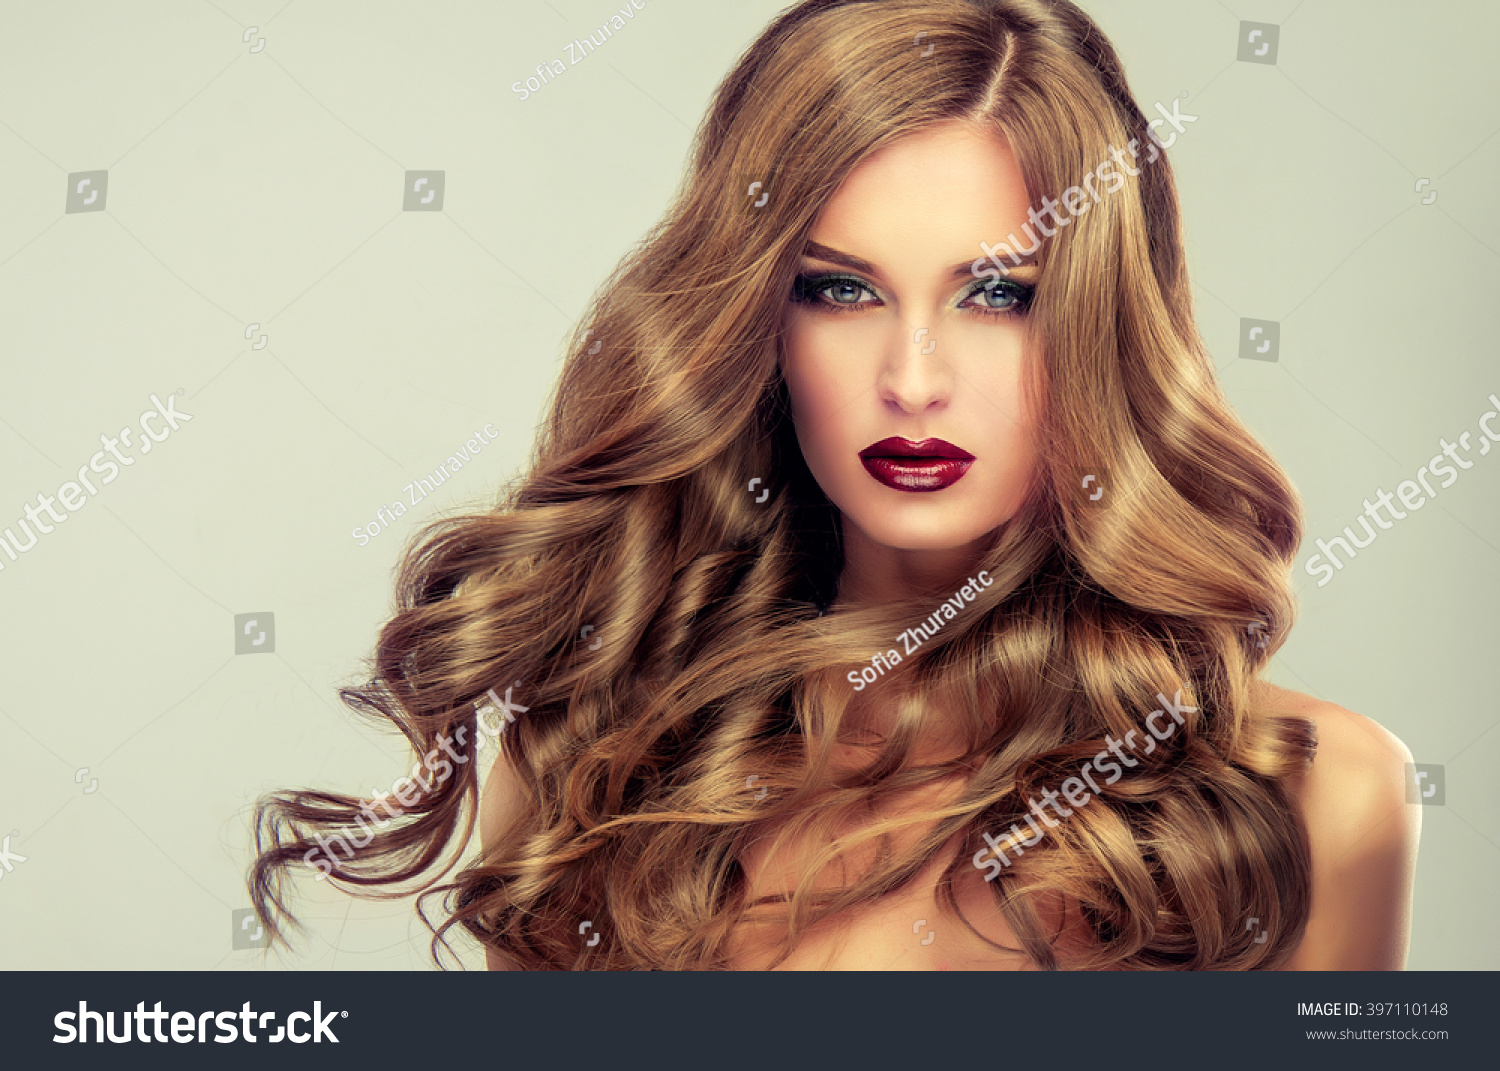 Beautiful Girl Long Wavy Hair Fairhaired Stock Photo 397110148 Shutterstock